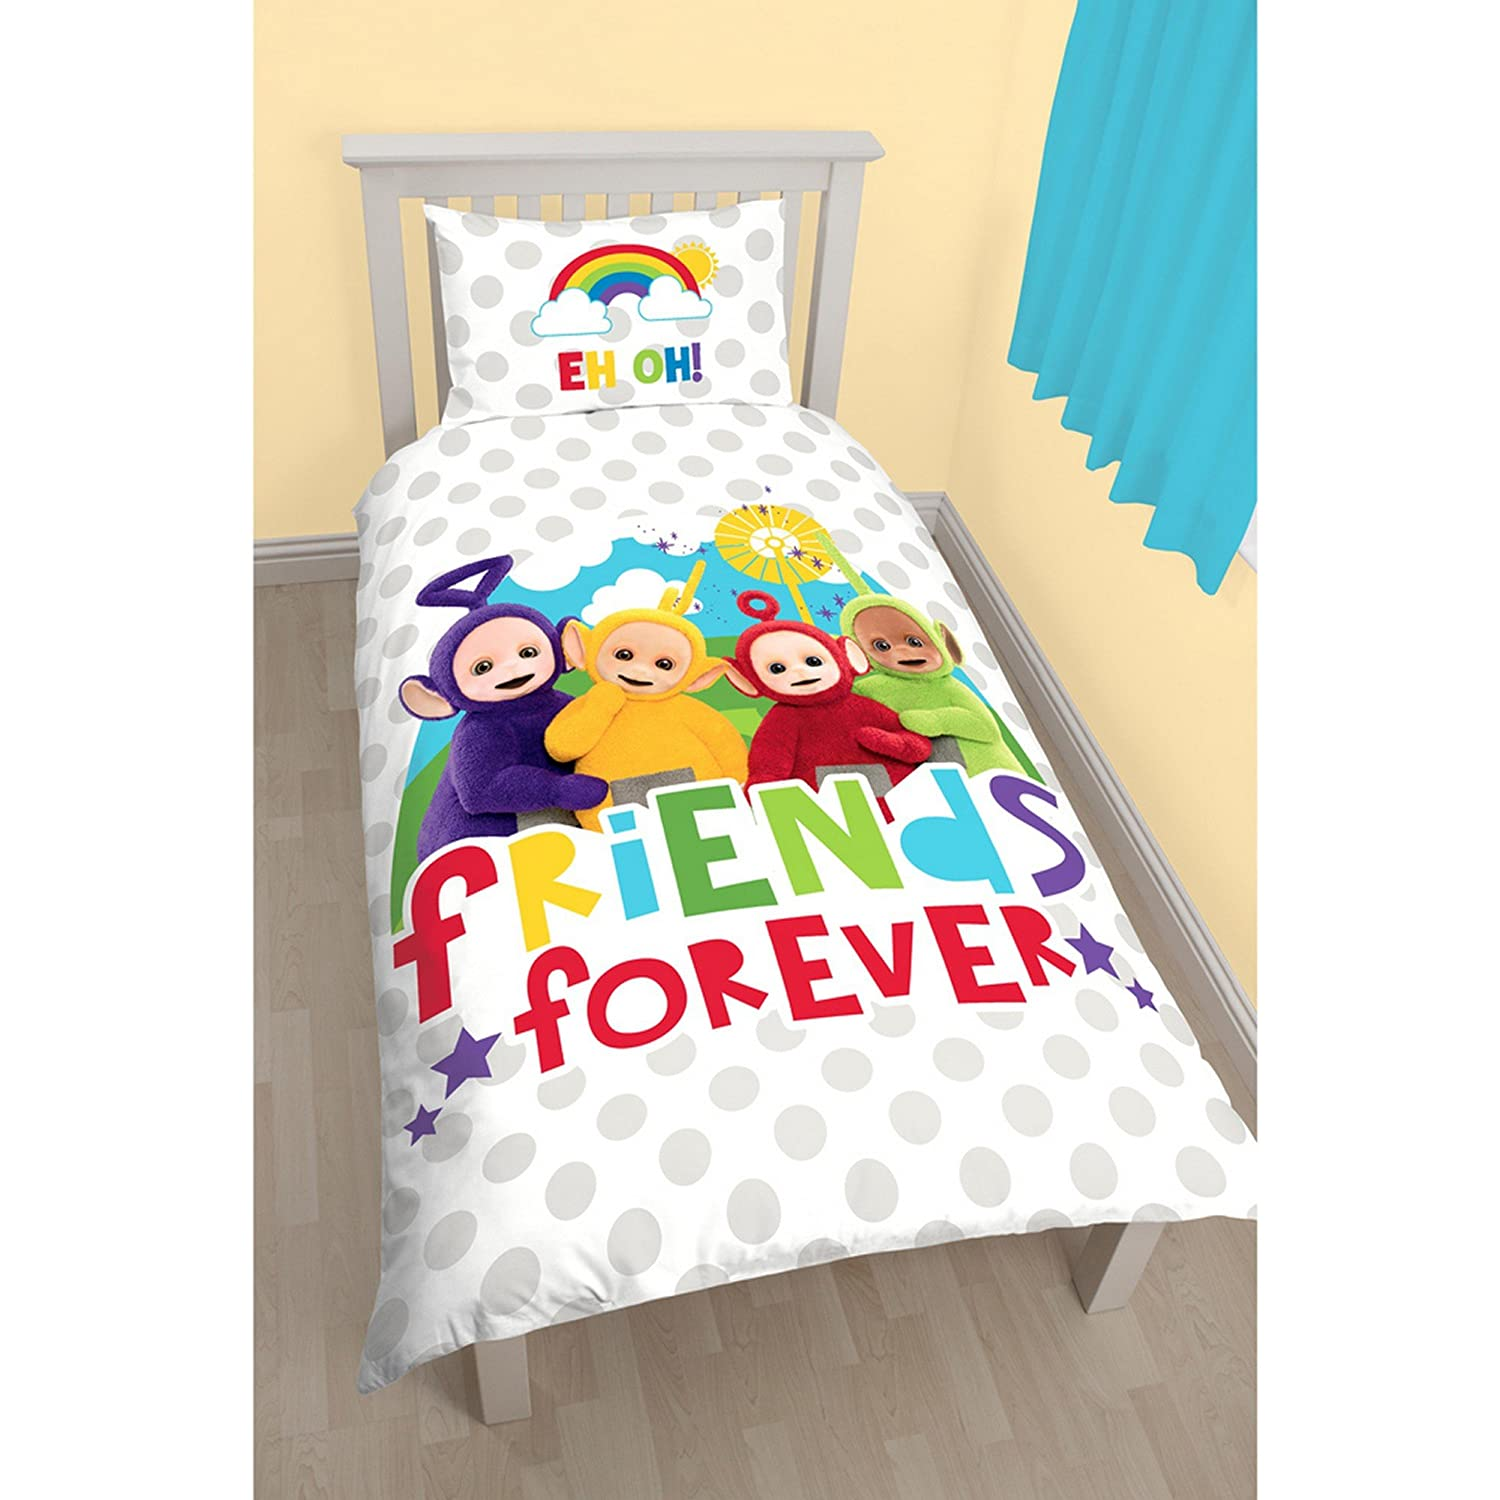 Teletubbies Childrens/Kids Official Playtime Reversible Single Duvet (Single Bed) (Multicoloured) UTKB922_1